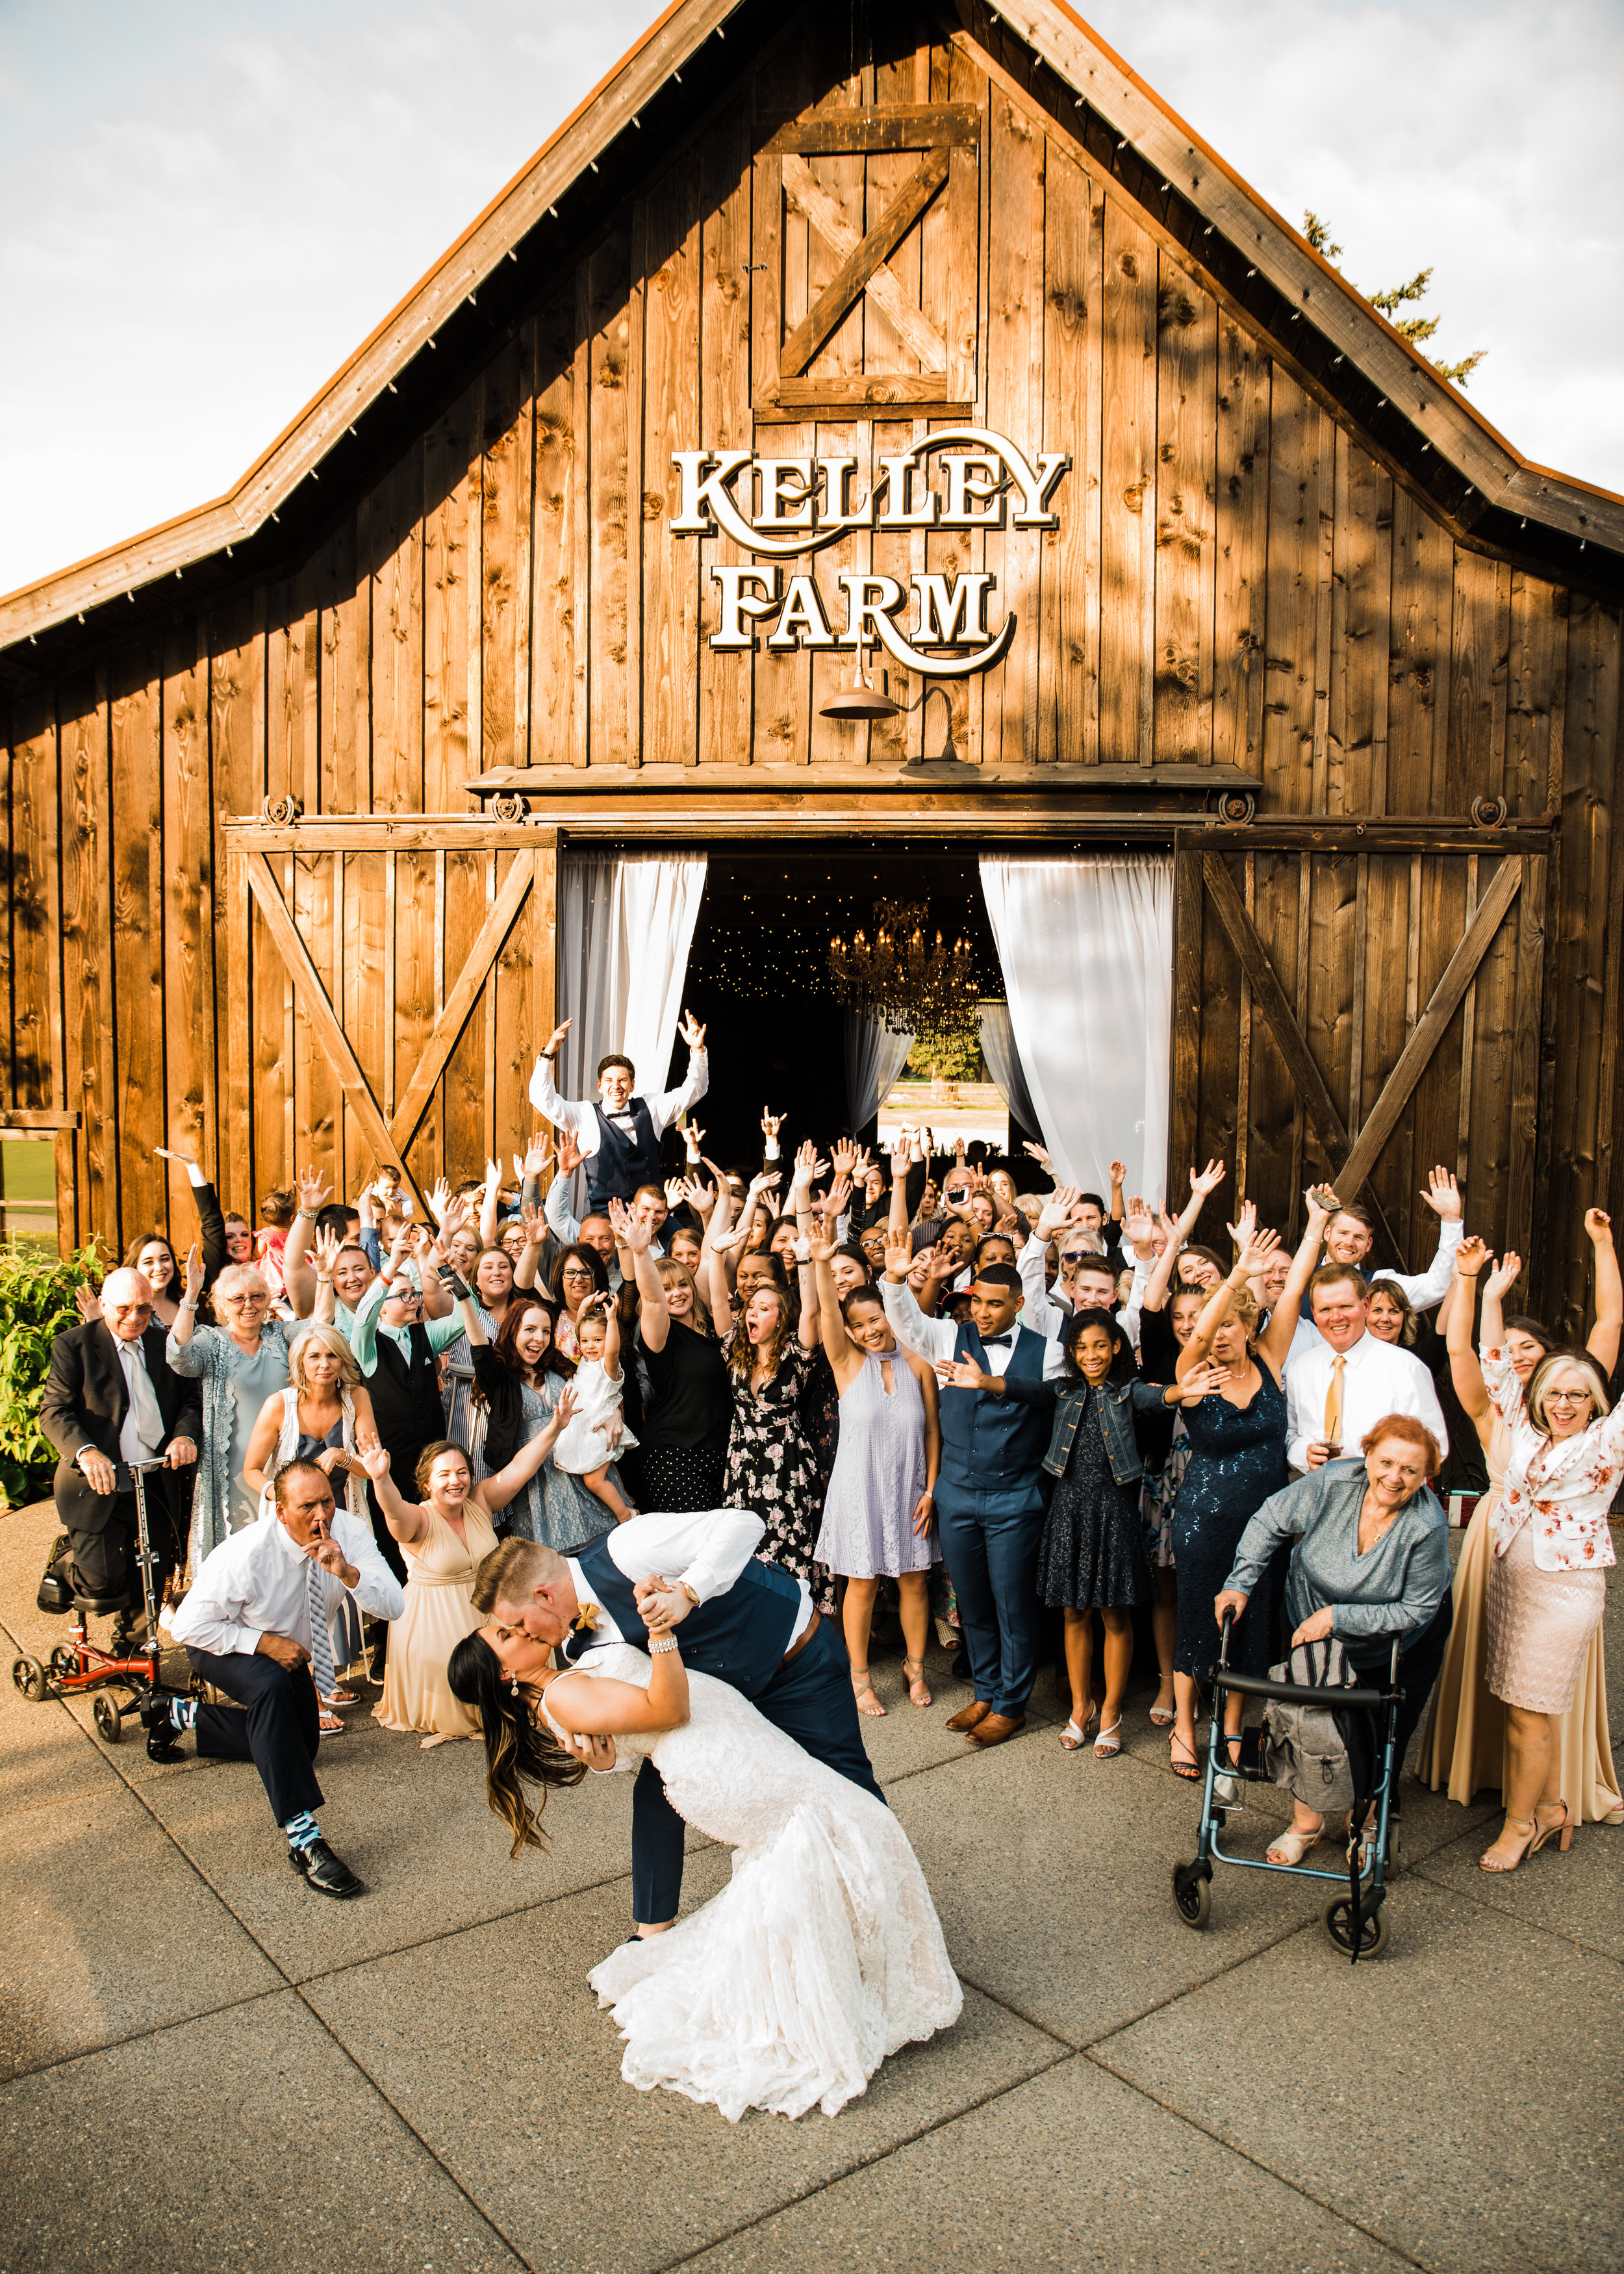 Wedding Day - Elopements and tiny weddings $1,500Full Wedding Day - $2,500Half day - $1,200